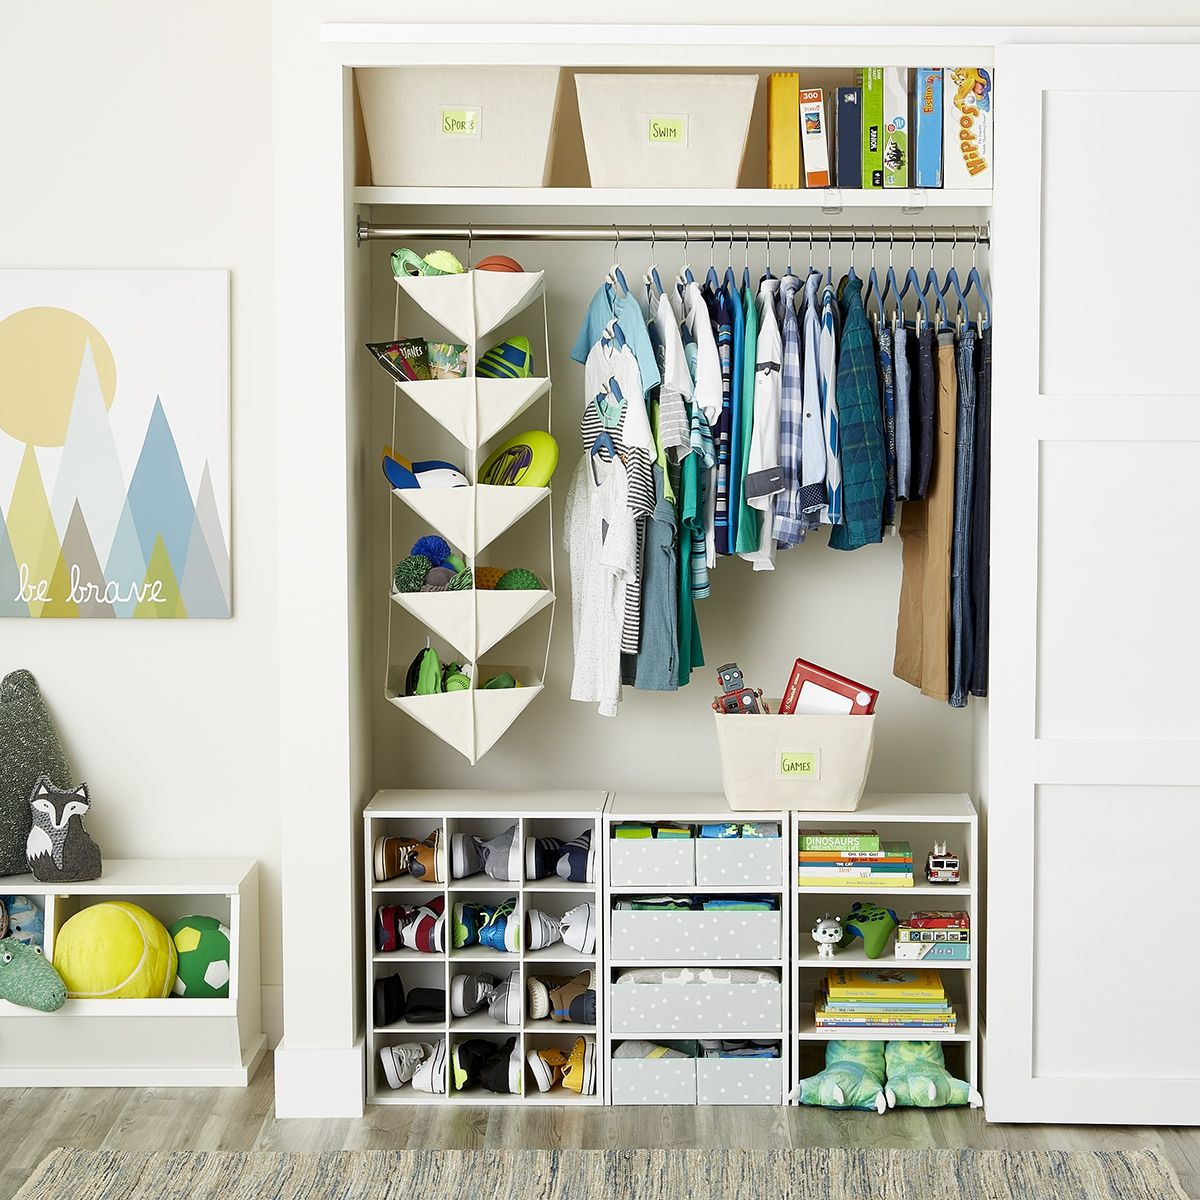 Create More Room To Grow With A Space That Opens Up To More